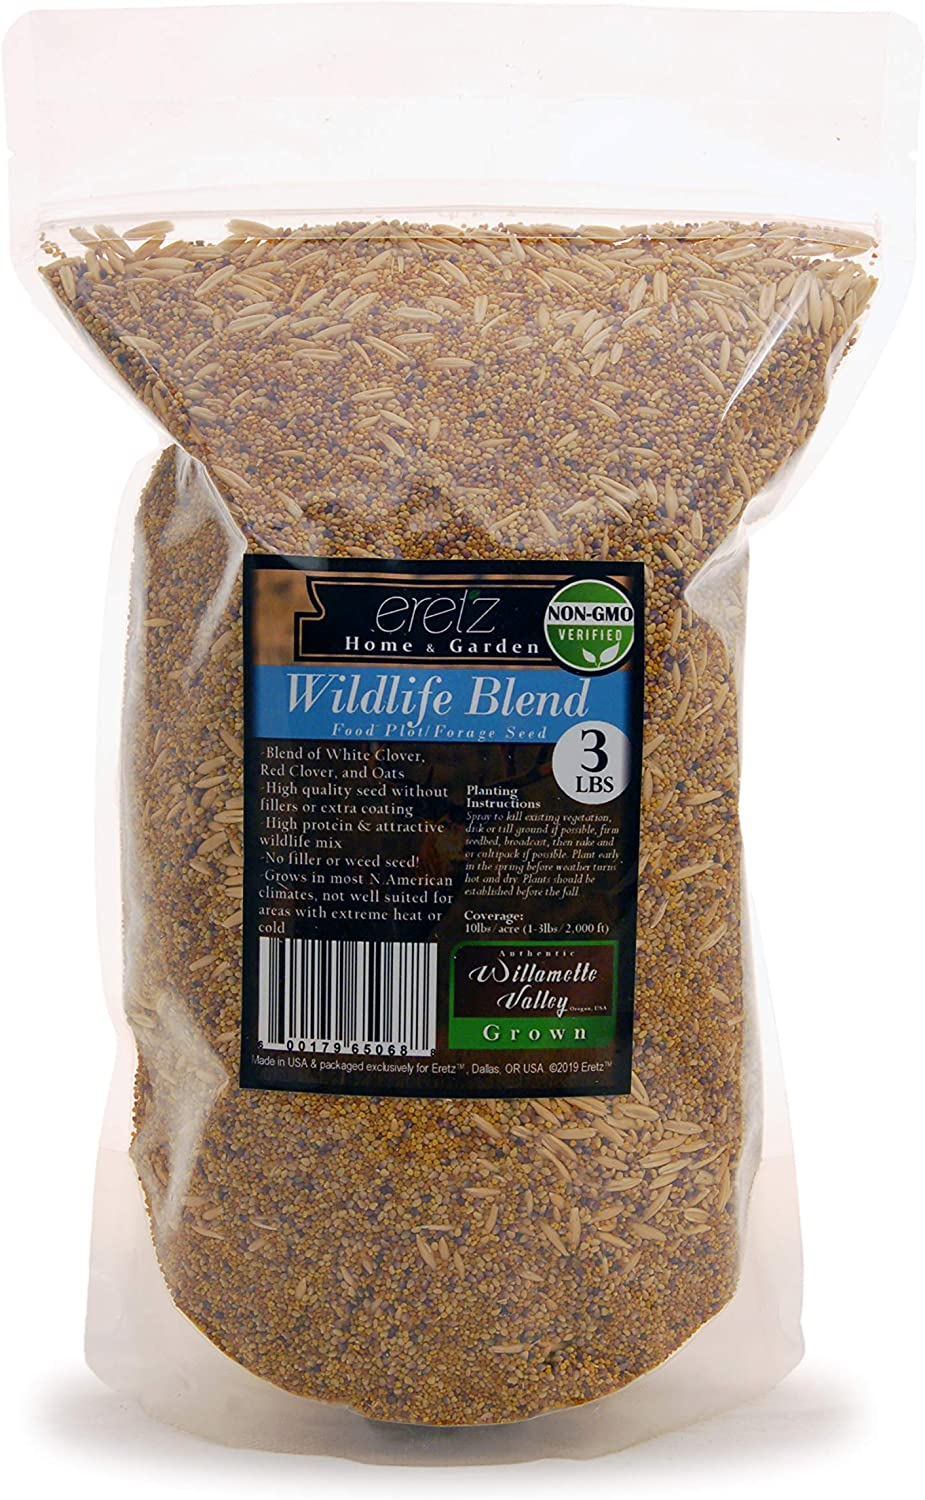 Wildlife Food Plot Blend & Forage Seed Mix by Eretz (3lb) - Choose Size! Willamette Valley, Oregon Grown, Attract and Feed: Deer, Turkeys, & More! No Coatings, No Weed Seeds.